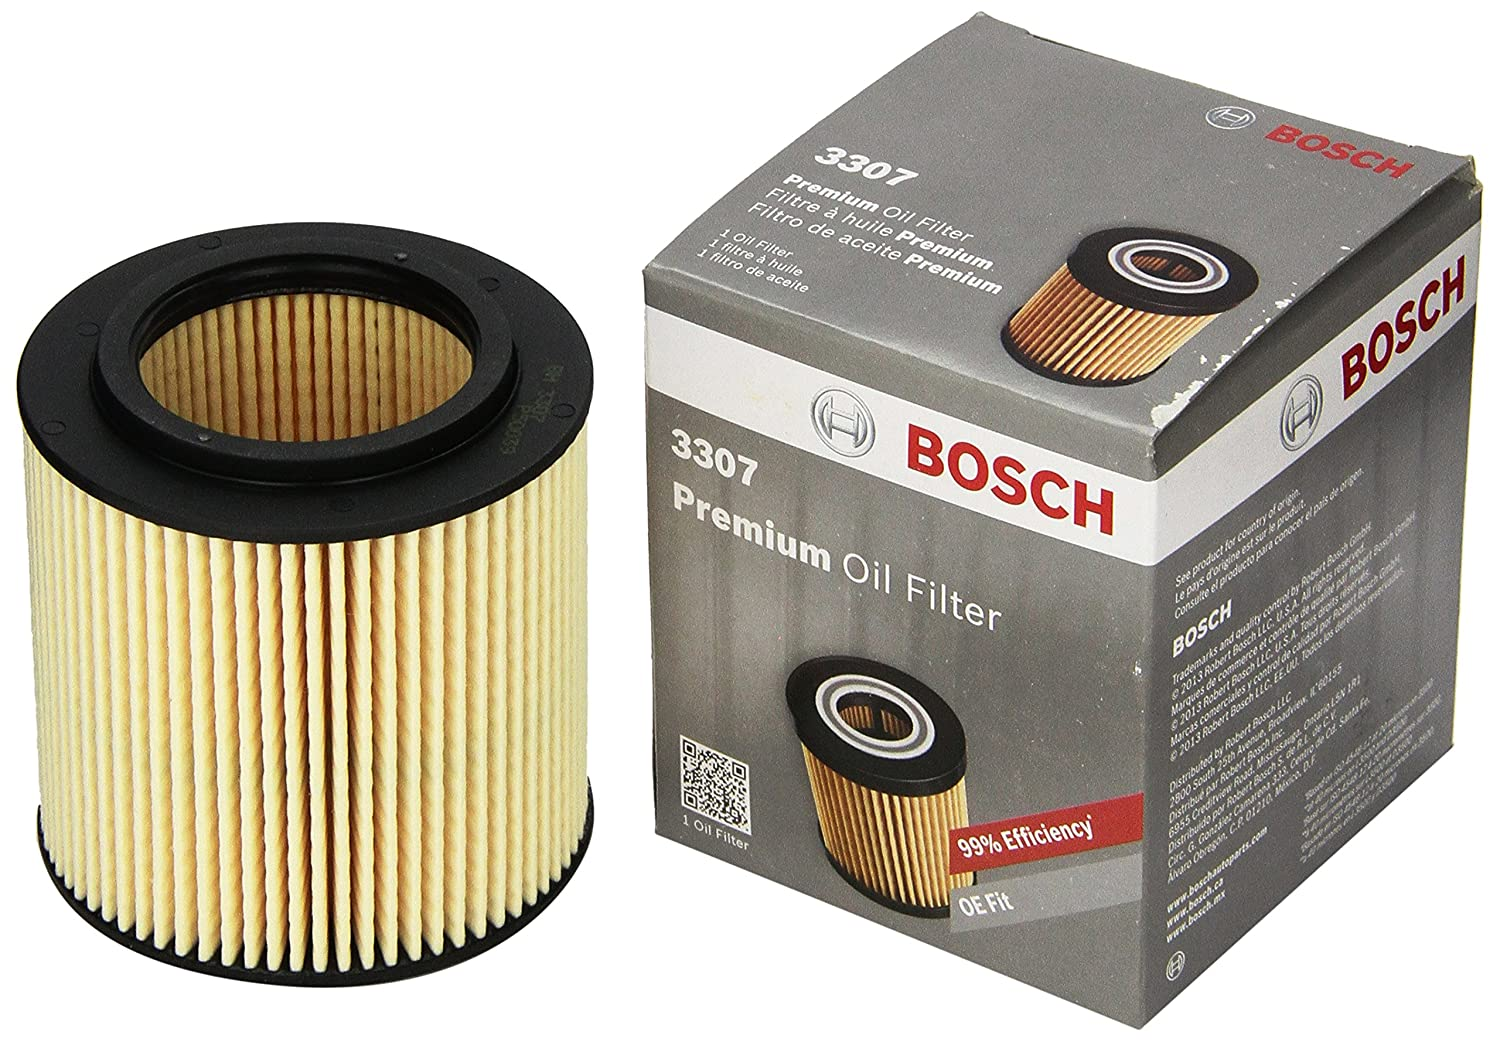 Bosch 3307 Premium FILTECH Oil Filter for Select BMW 128, 135, 228, 235, 240, 320, 323, 325, 340, 428, 435, 440 (xDrive, M, i, L, X, Z) + More 3307